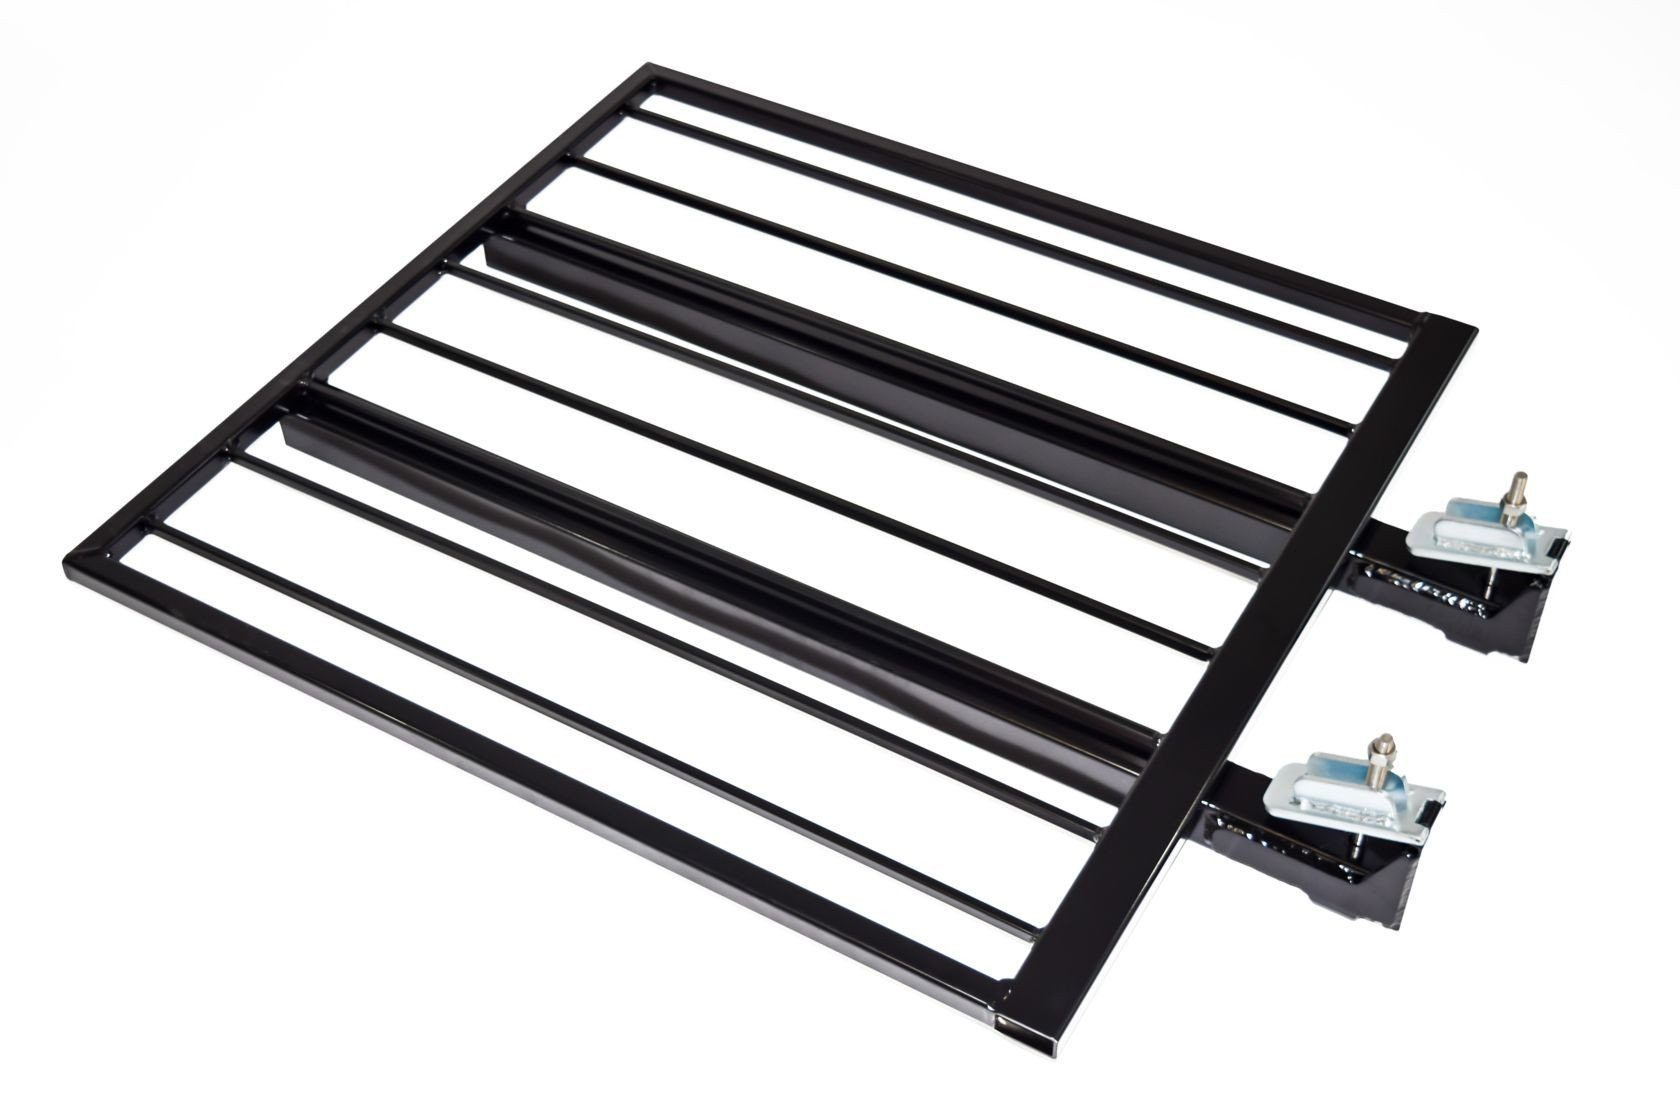 Aluminum Guardrail Frame (Code compliant for public use) Black Finish 3'x42